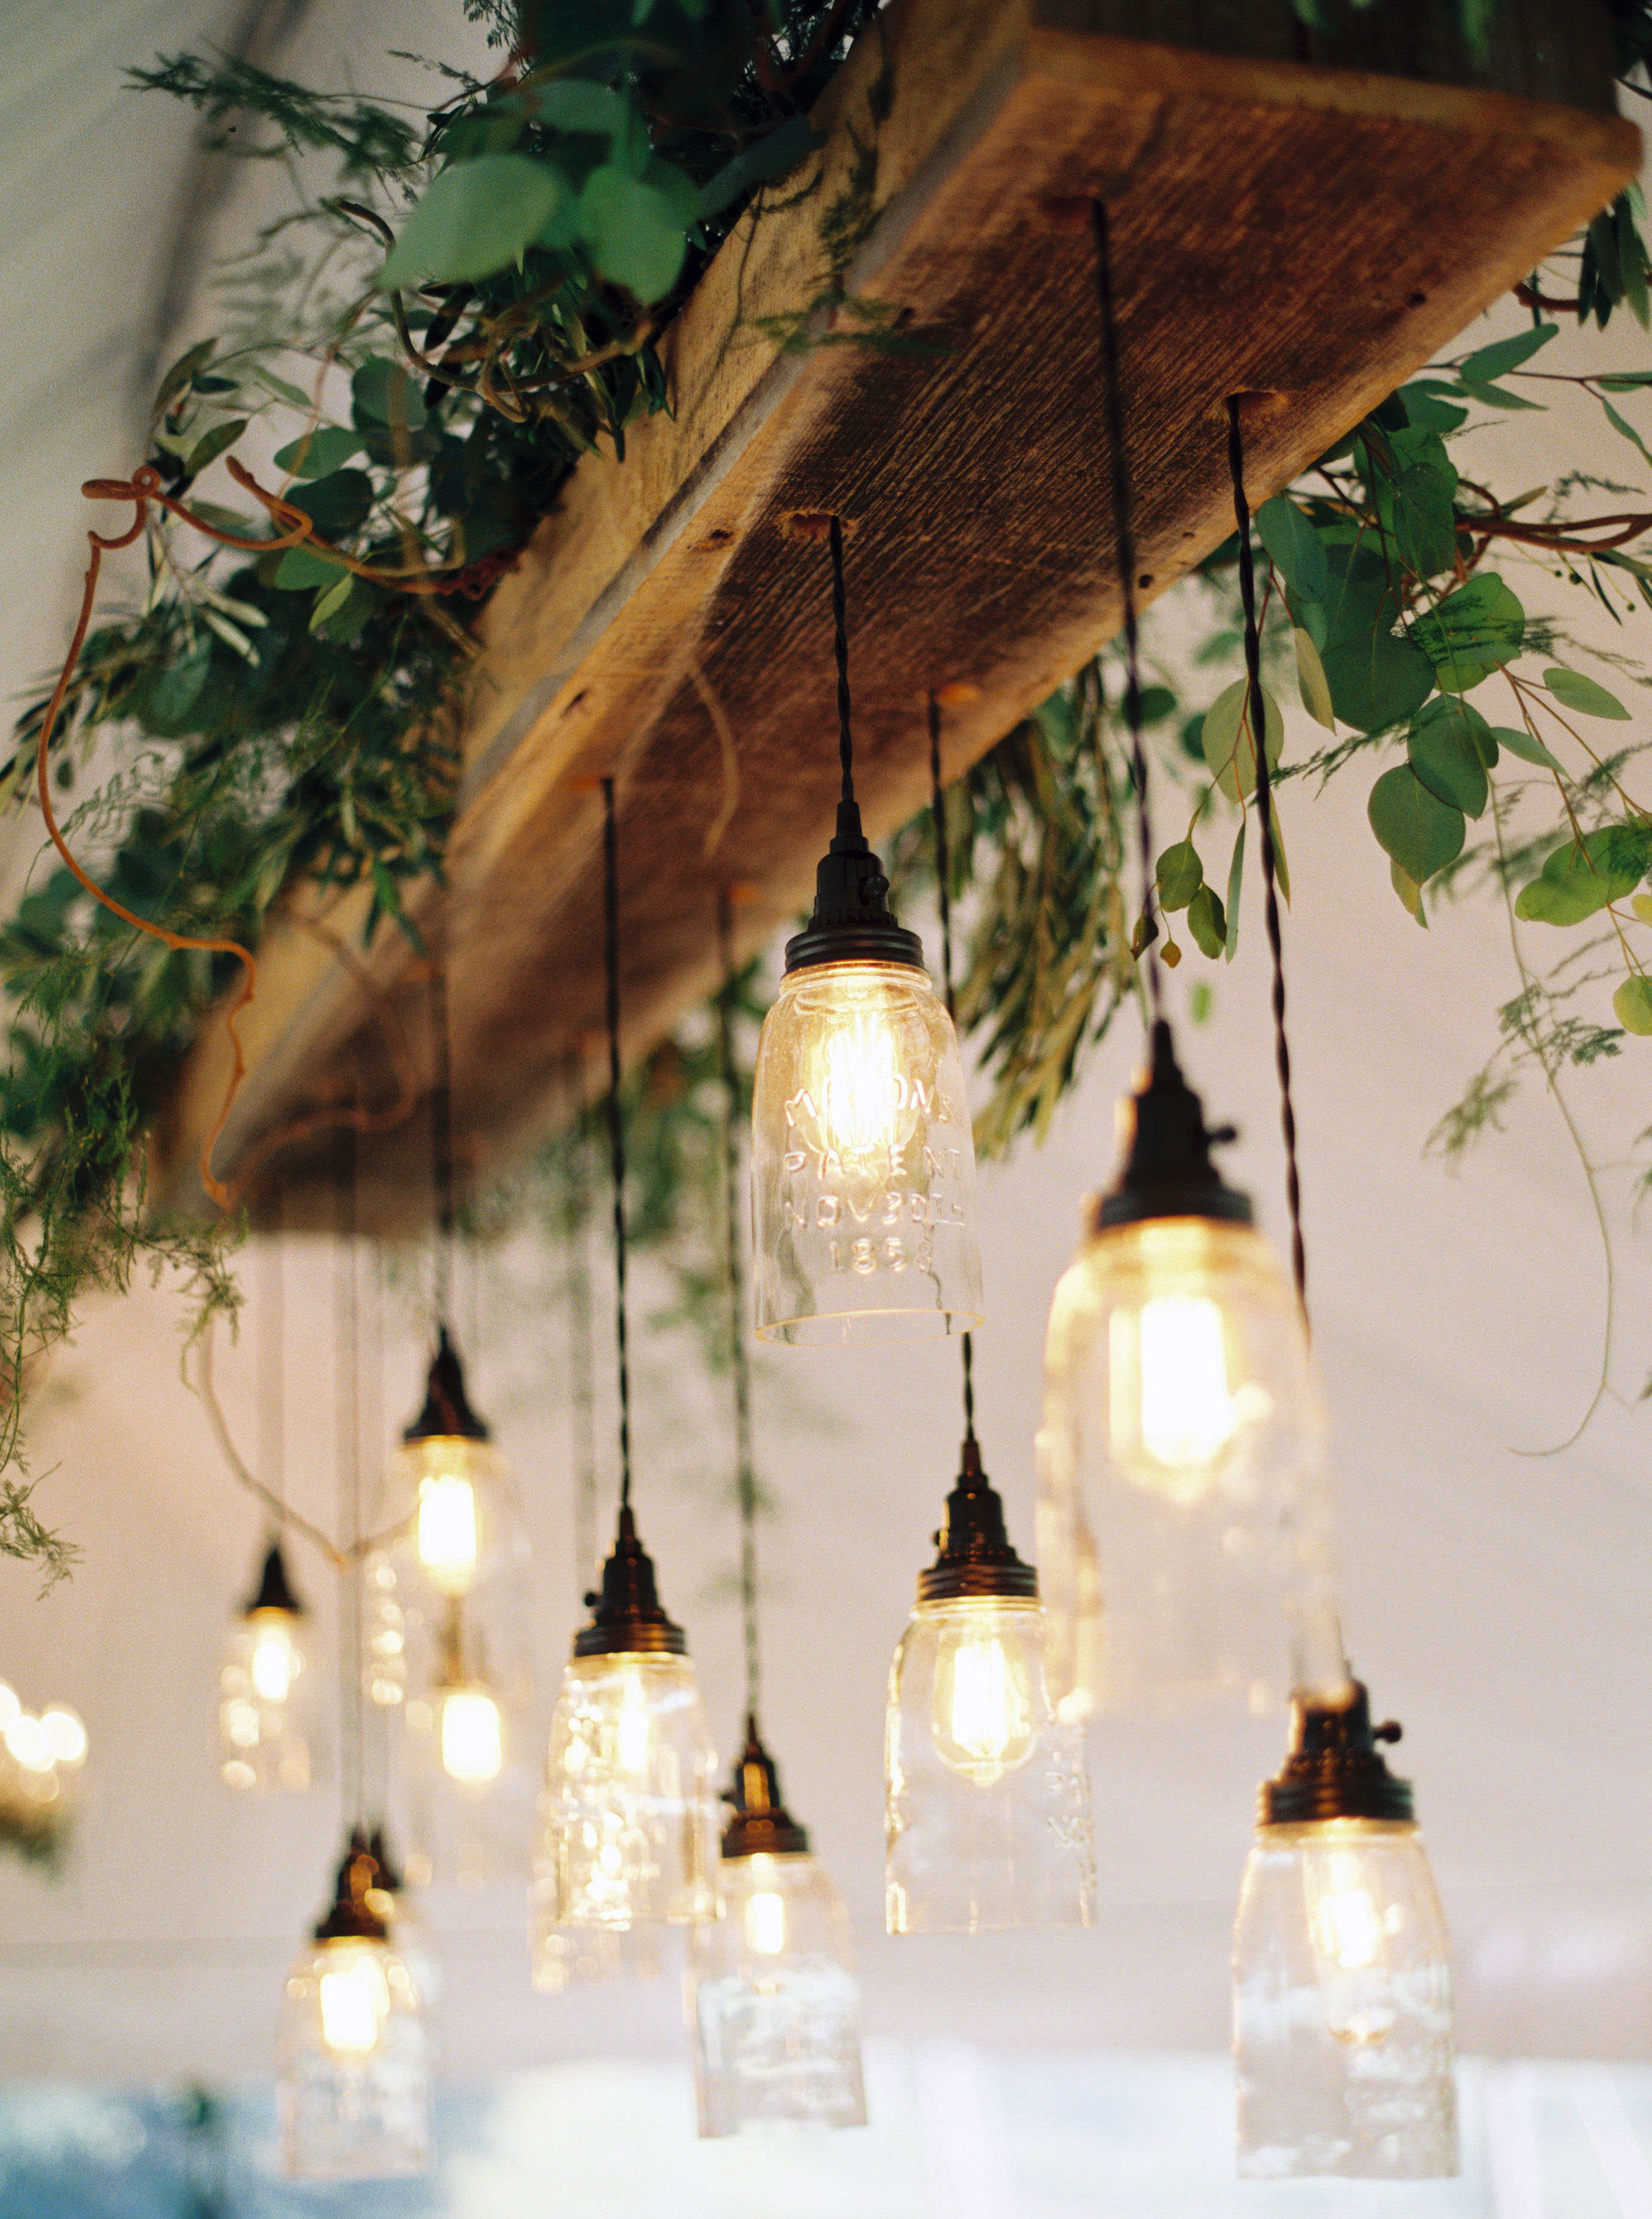 mason jar hanging lights from wood beam with greenery